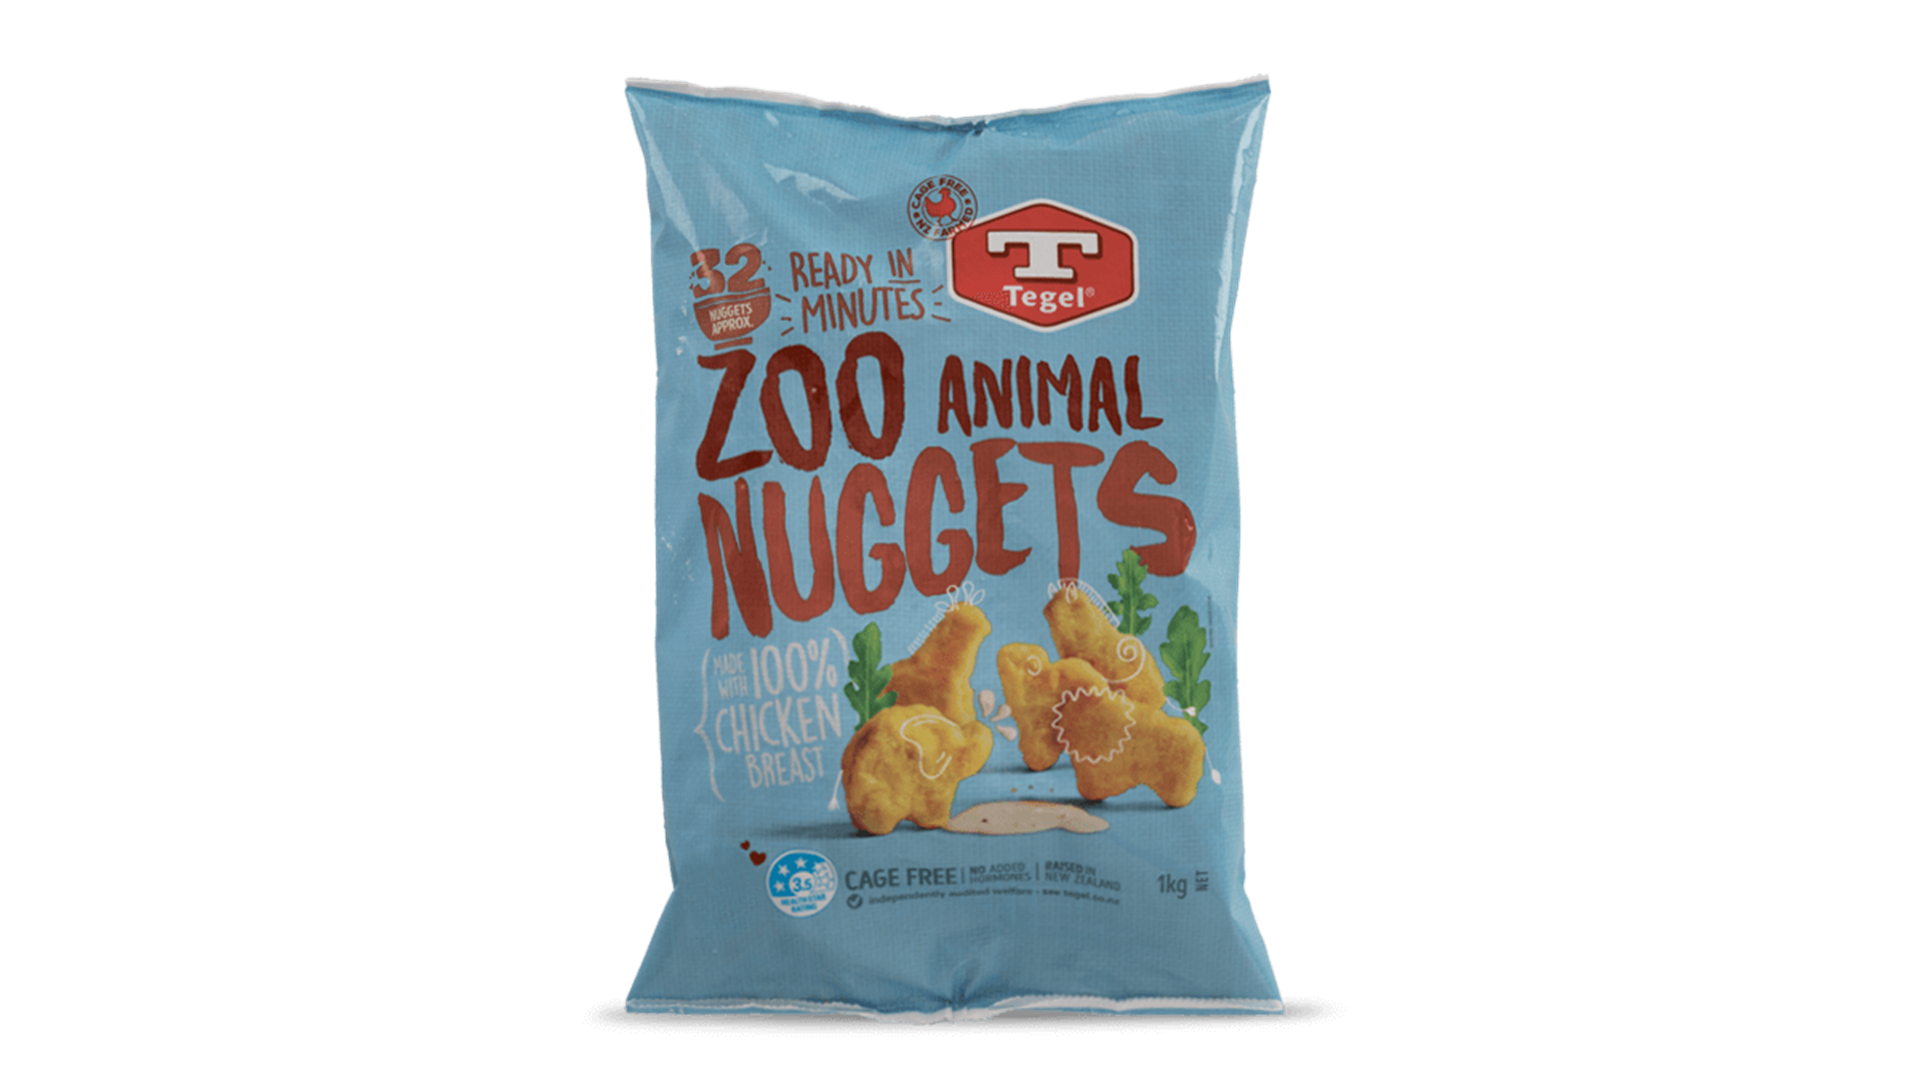 Zoo cage png. Tegel animal nuggets kg